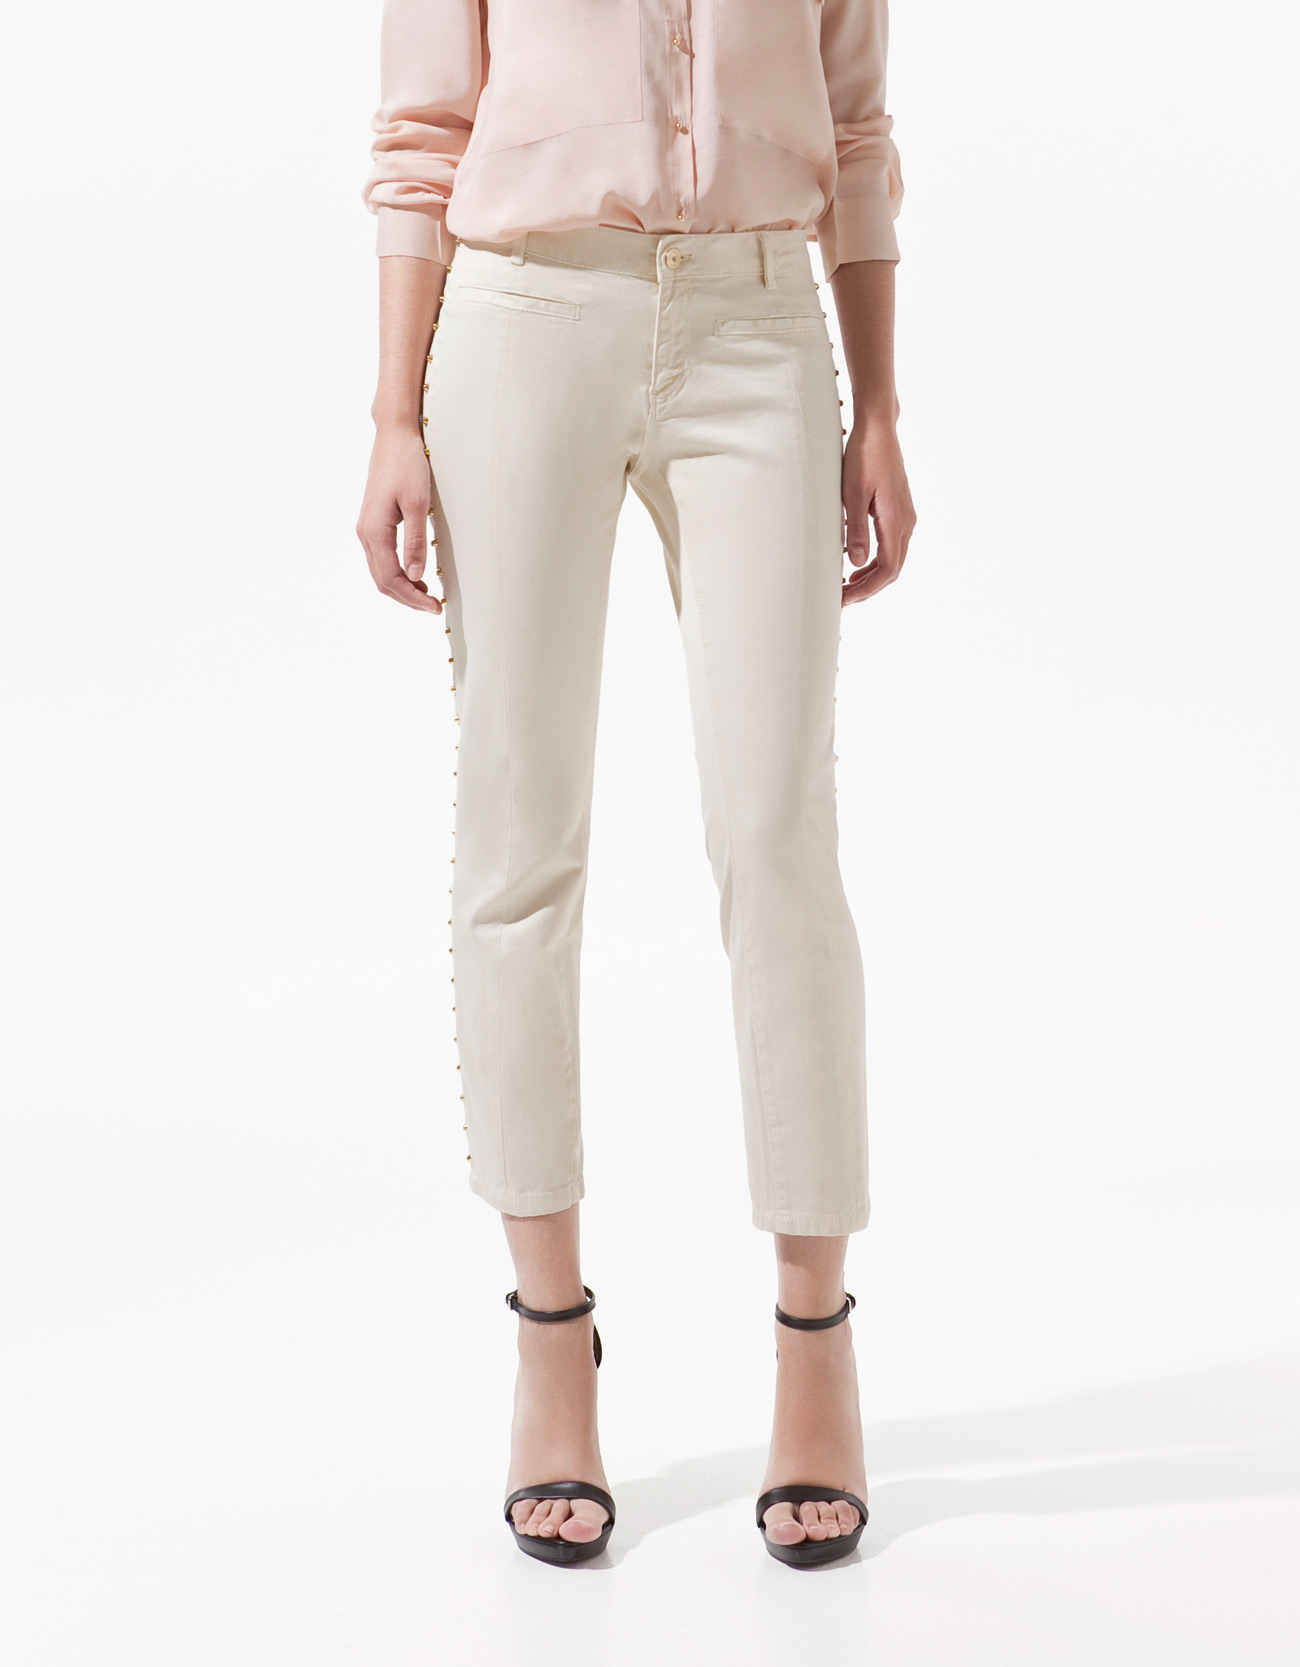 Shop our Collection of Women's Ivory/Cream Pants at getdangero.ga for the Latest Designer Brands & Styles. FREE SHIPPING AVAILABLE! Macy's Presents: The Edit- A curated mix of fashion and inspiration Check It Out. Alfani Tummy-Control Pull-On Capri Pants, Created for Macy's.